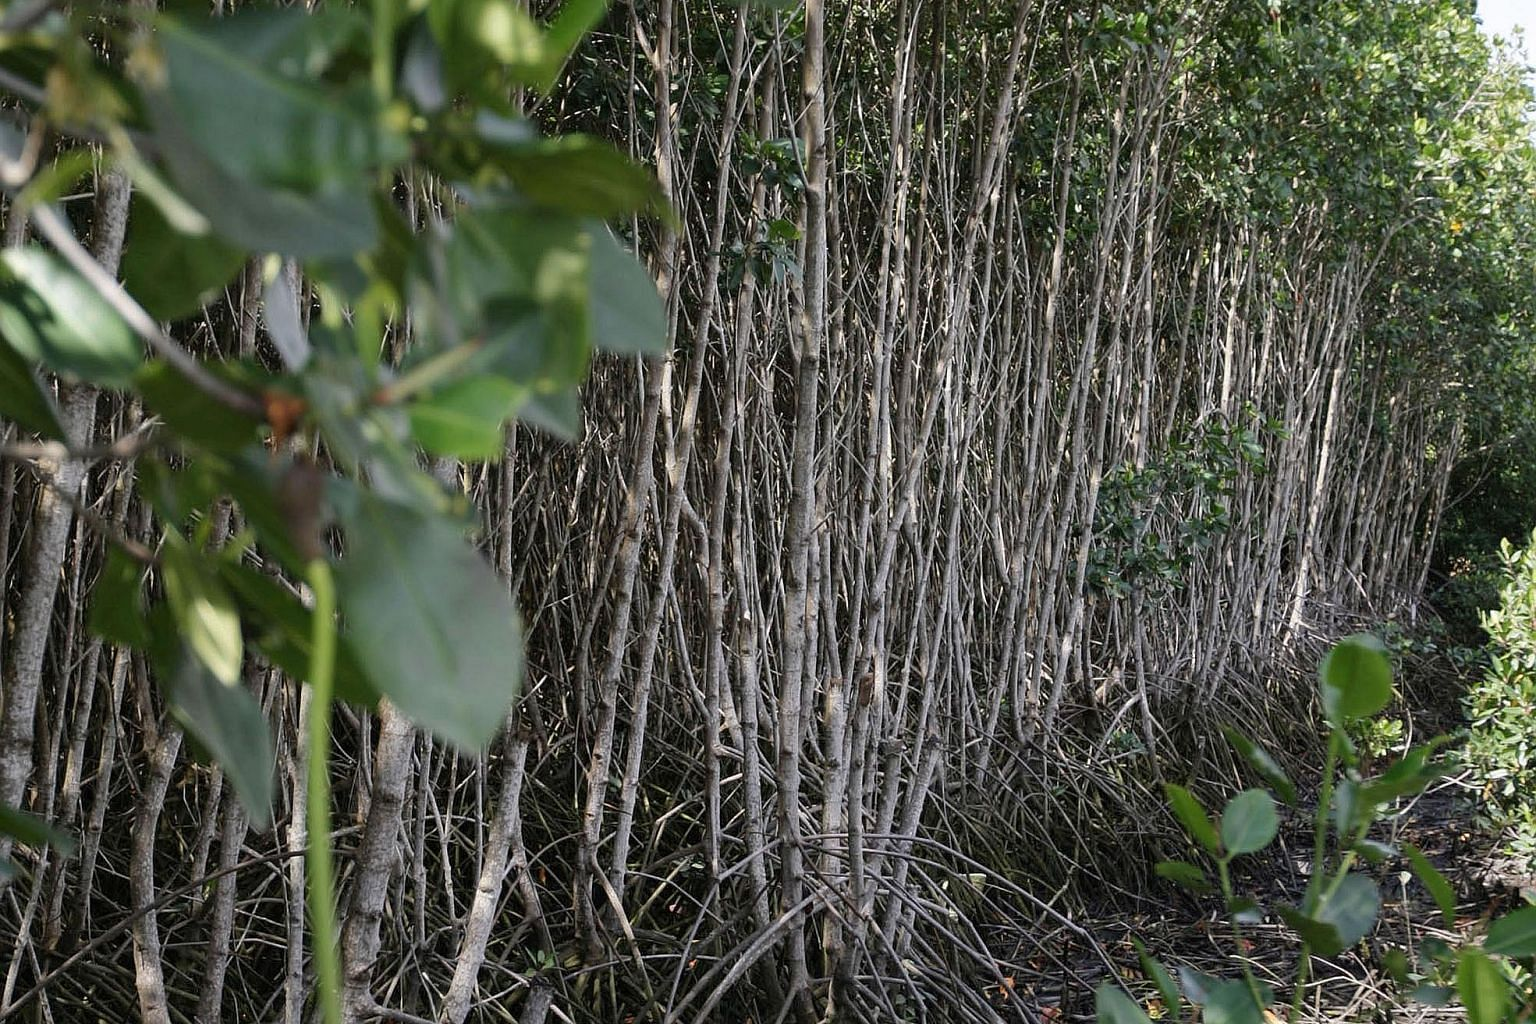 Mangroves are highly efficient carbon sinks, absorbing up to five times as much carbon dioxide as tropical forests. They are also important ecosystems, providing spawning grounds and habitat for hundreds of species.